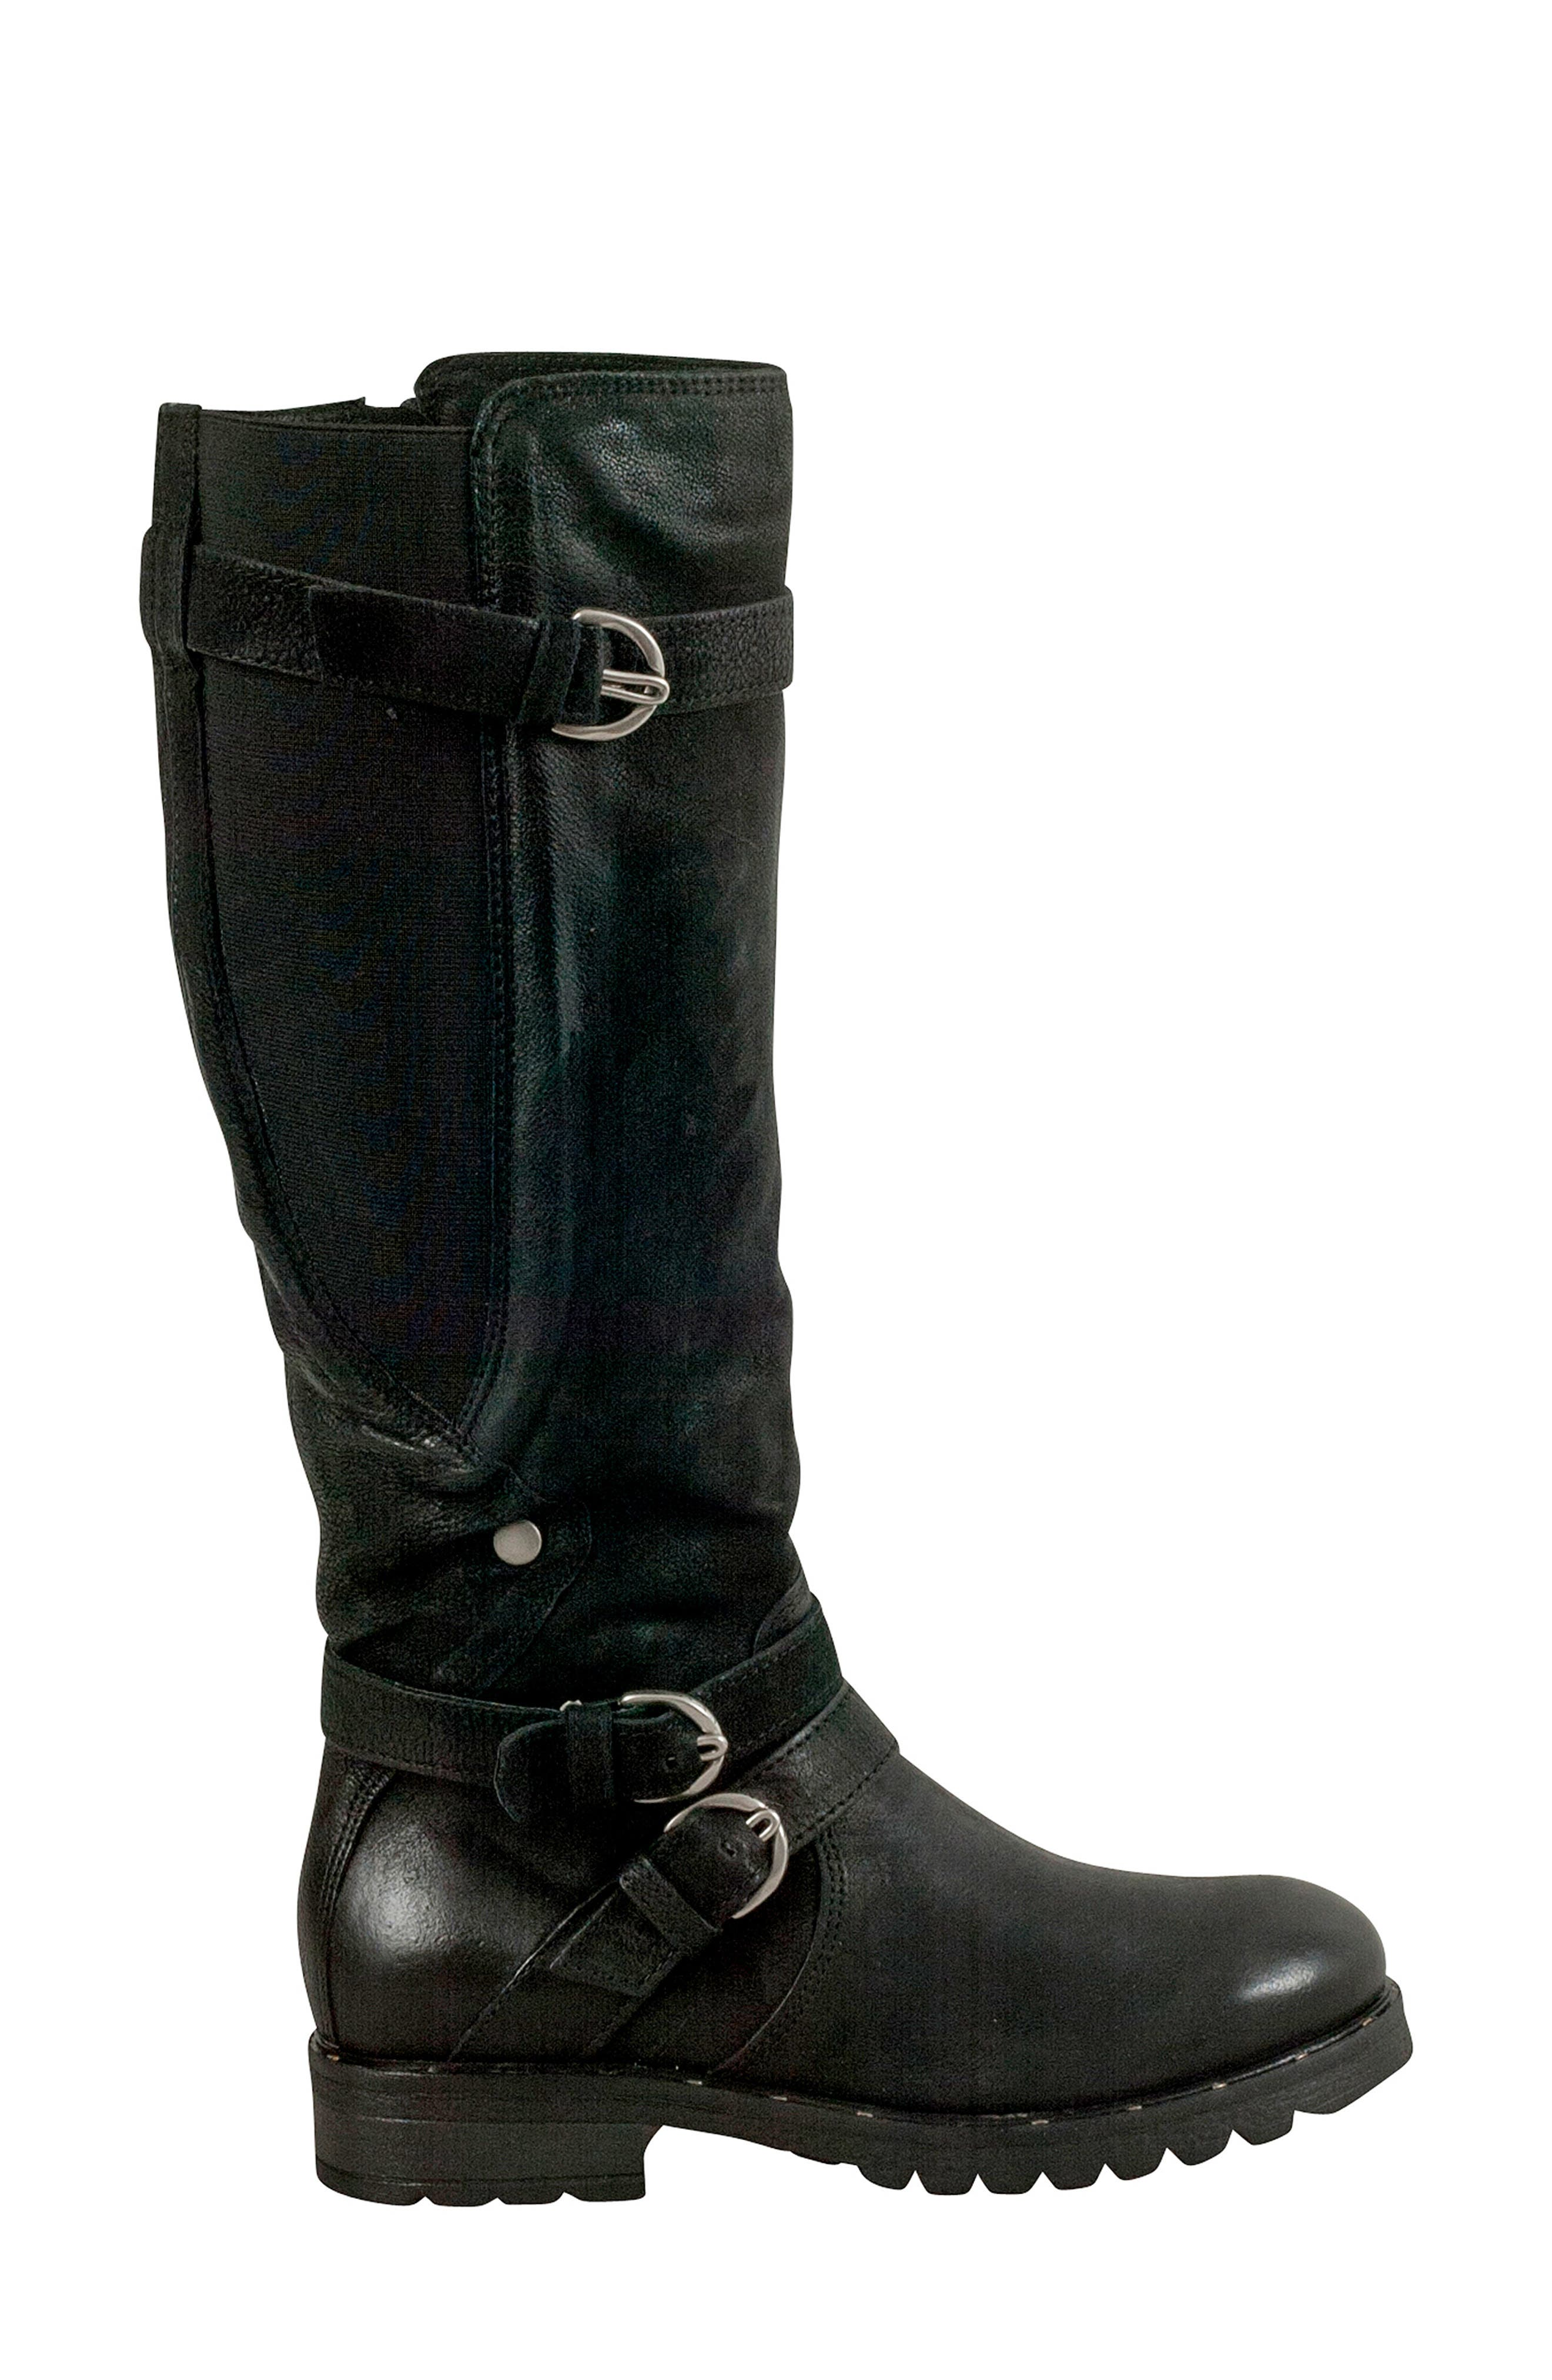 Prim Knee High Boot,                             Alternate thumbnail 3, color,                             BLACK LEATHER